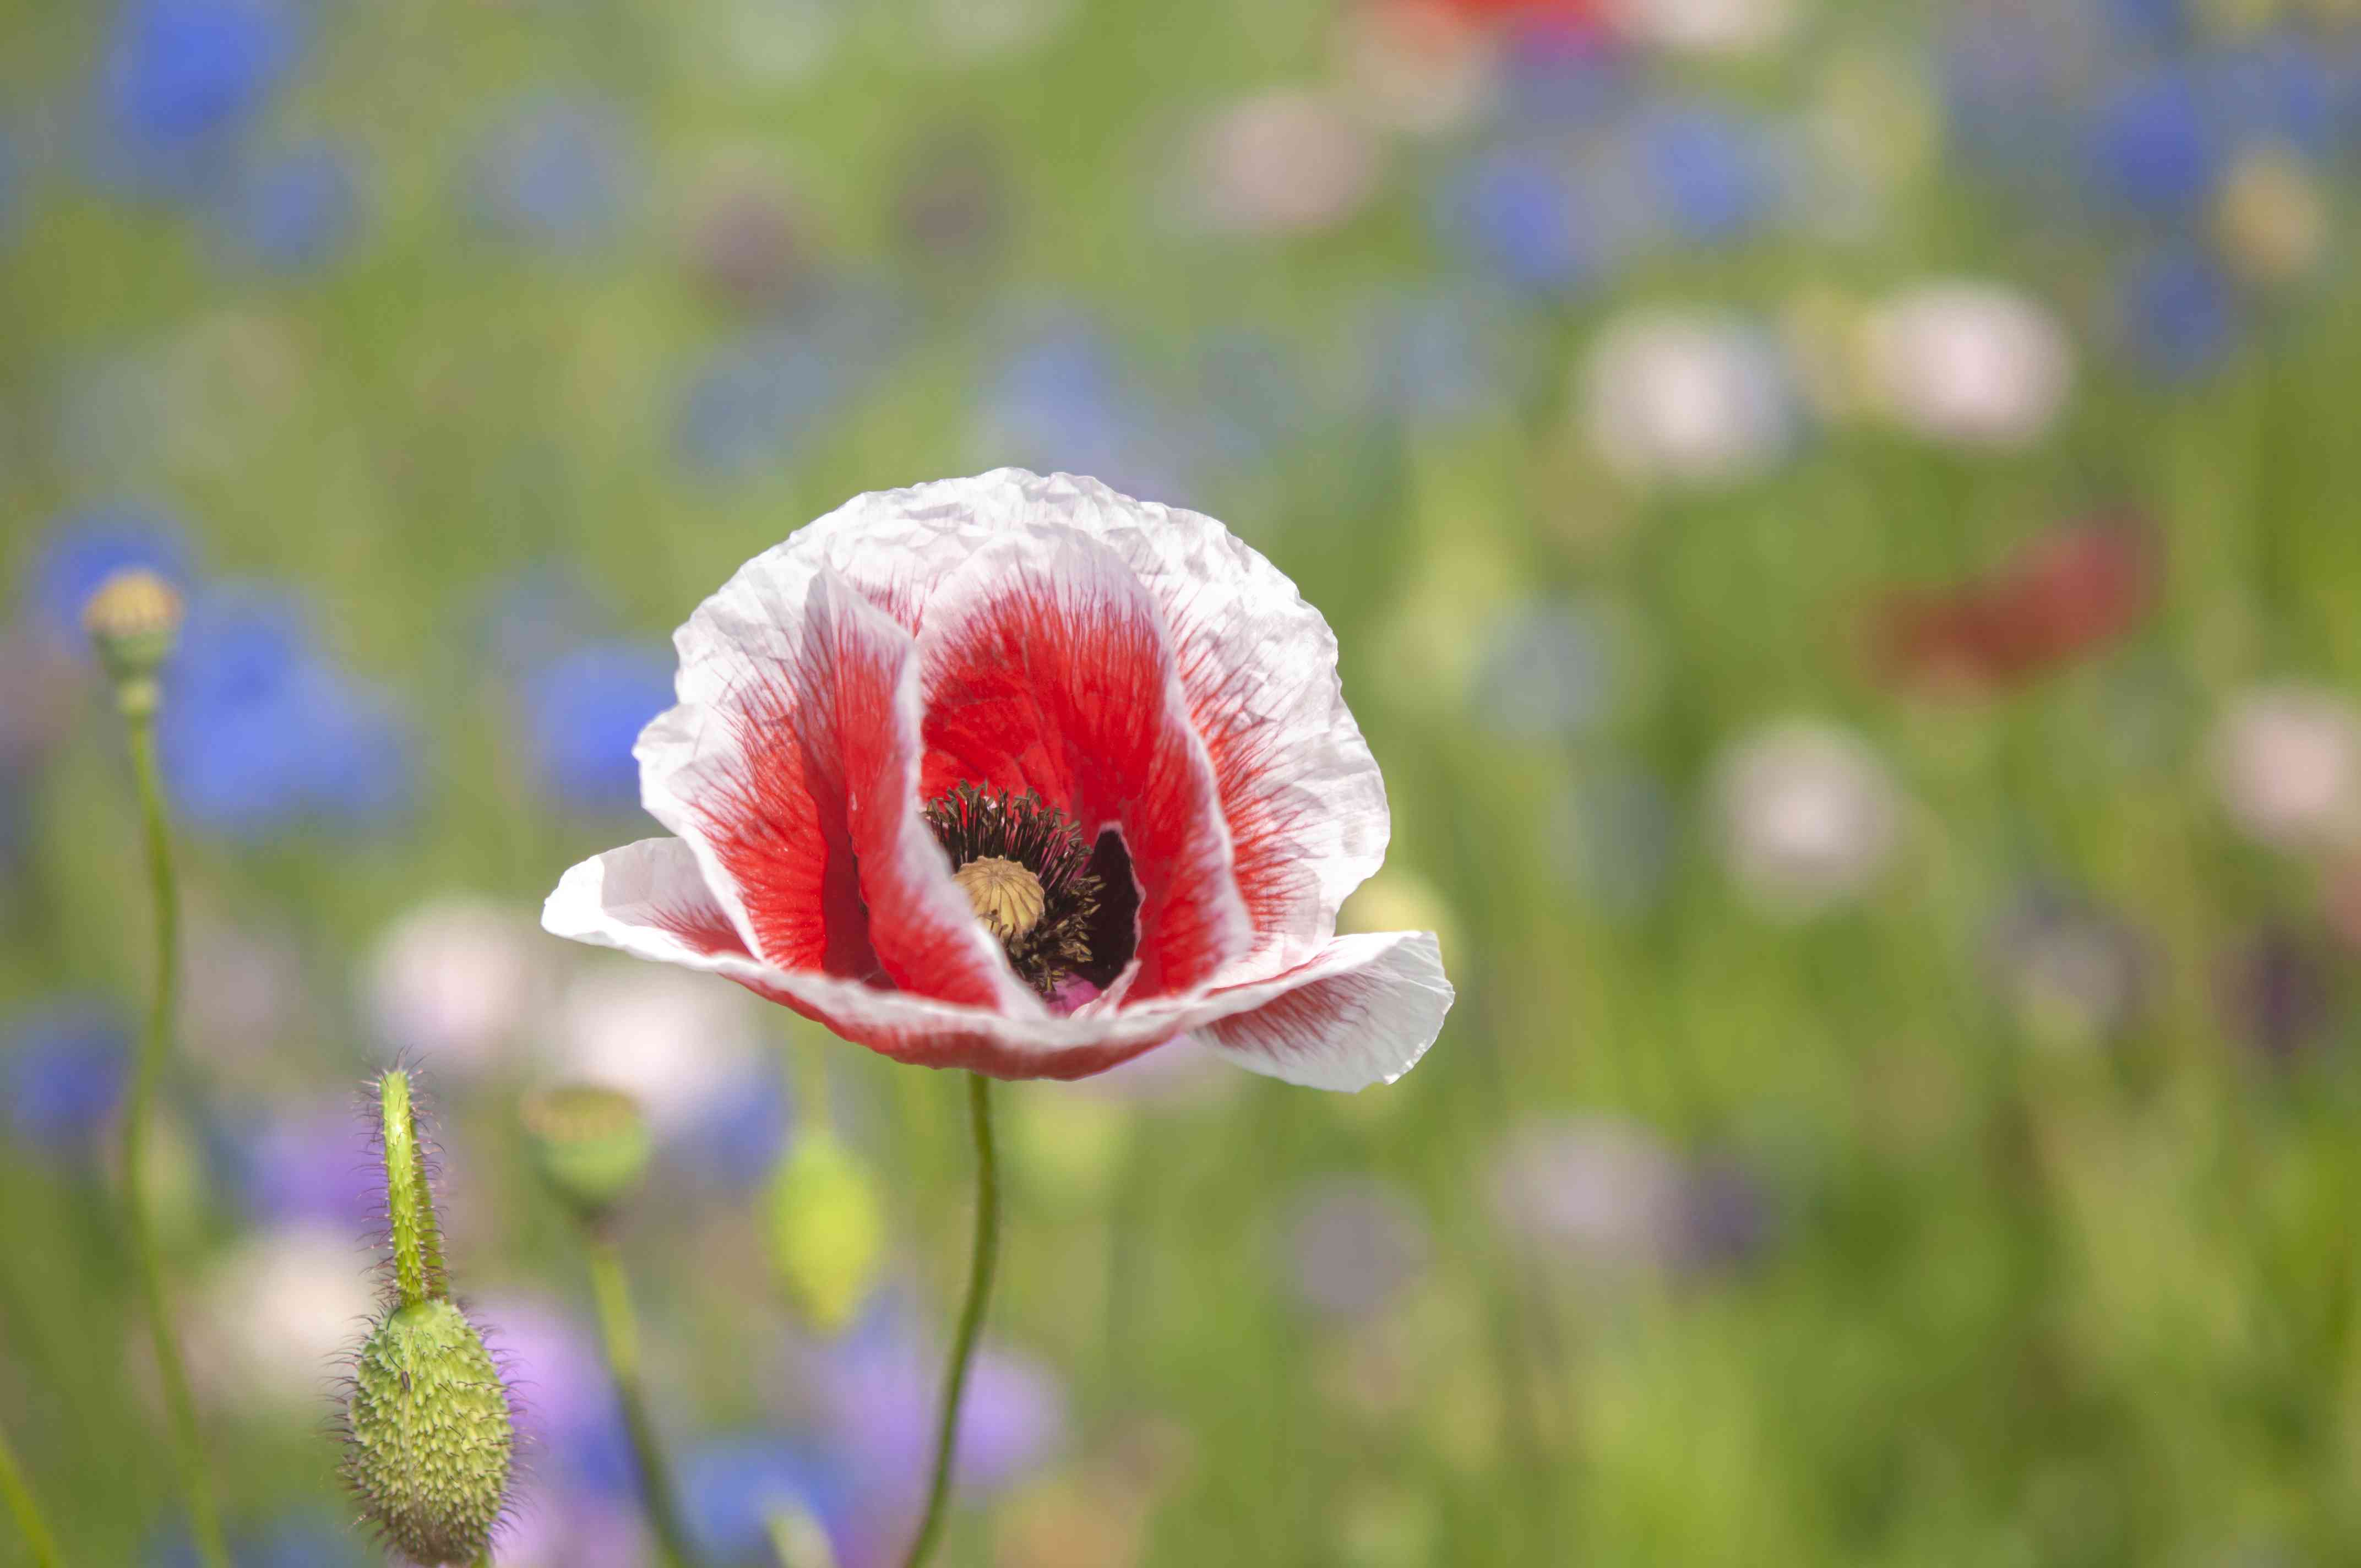 Common poppy with red flowers and white tips next to bud closeup